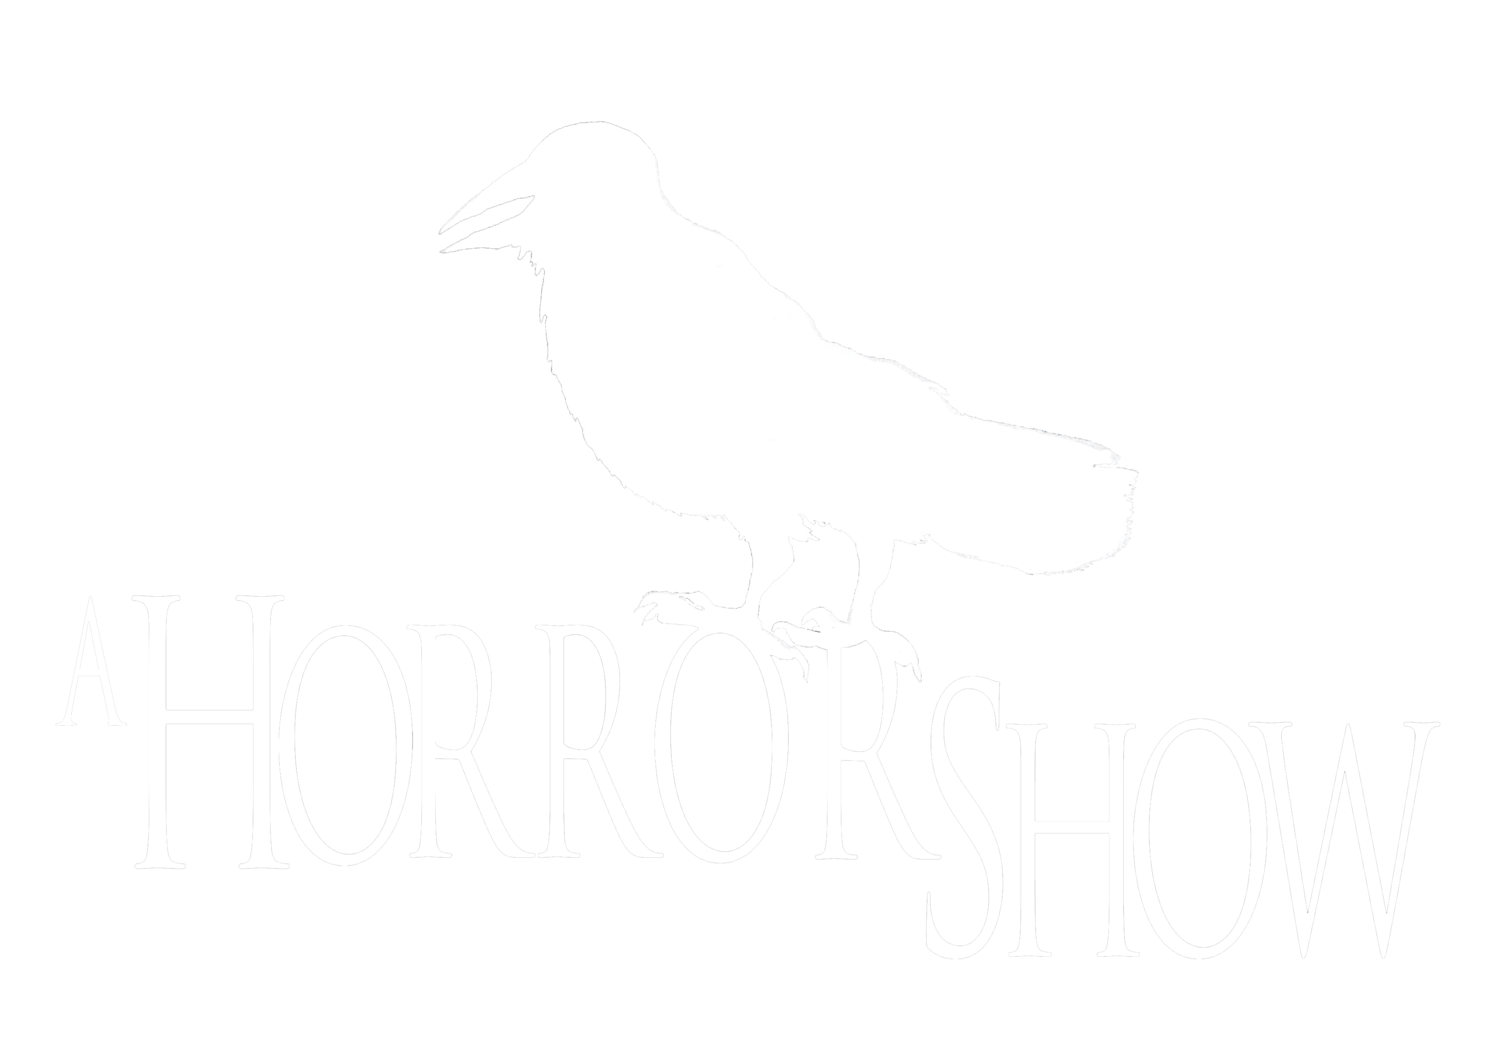 A Horrorshow